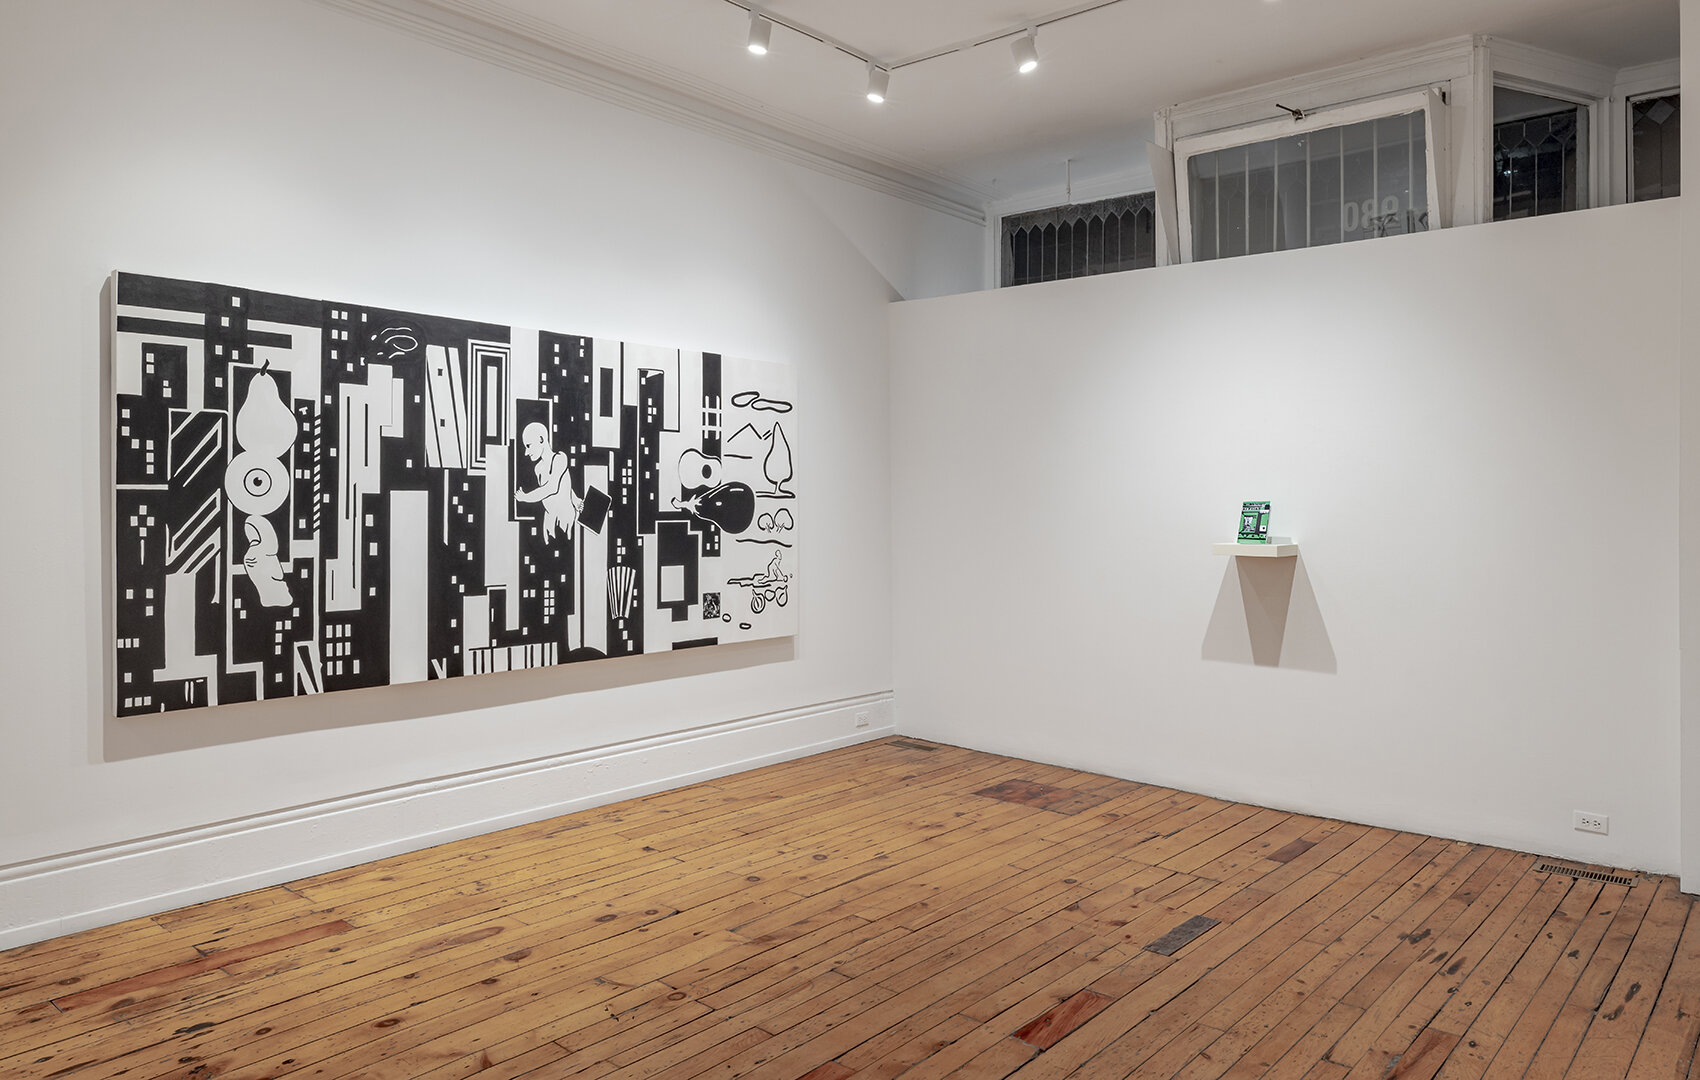 Isaac Midnight Repairs 2019 installation view 8  Low Res.jpg